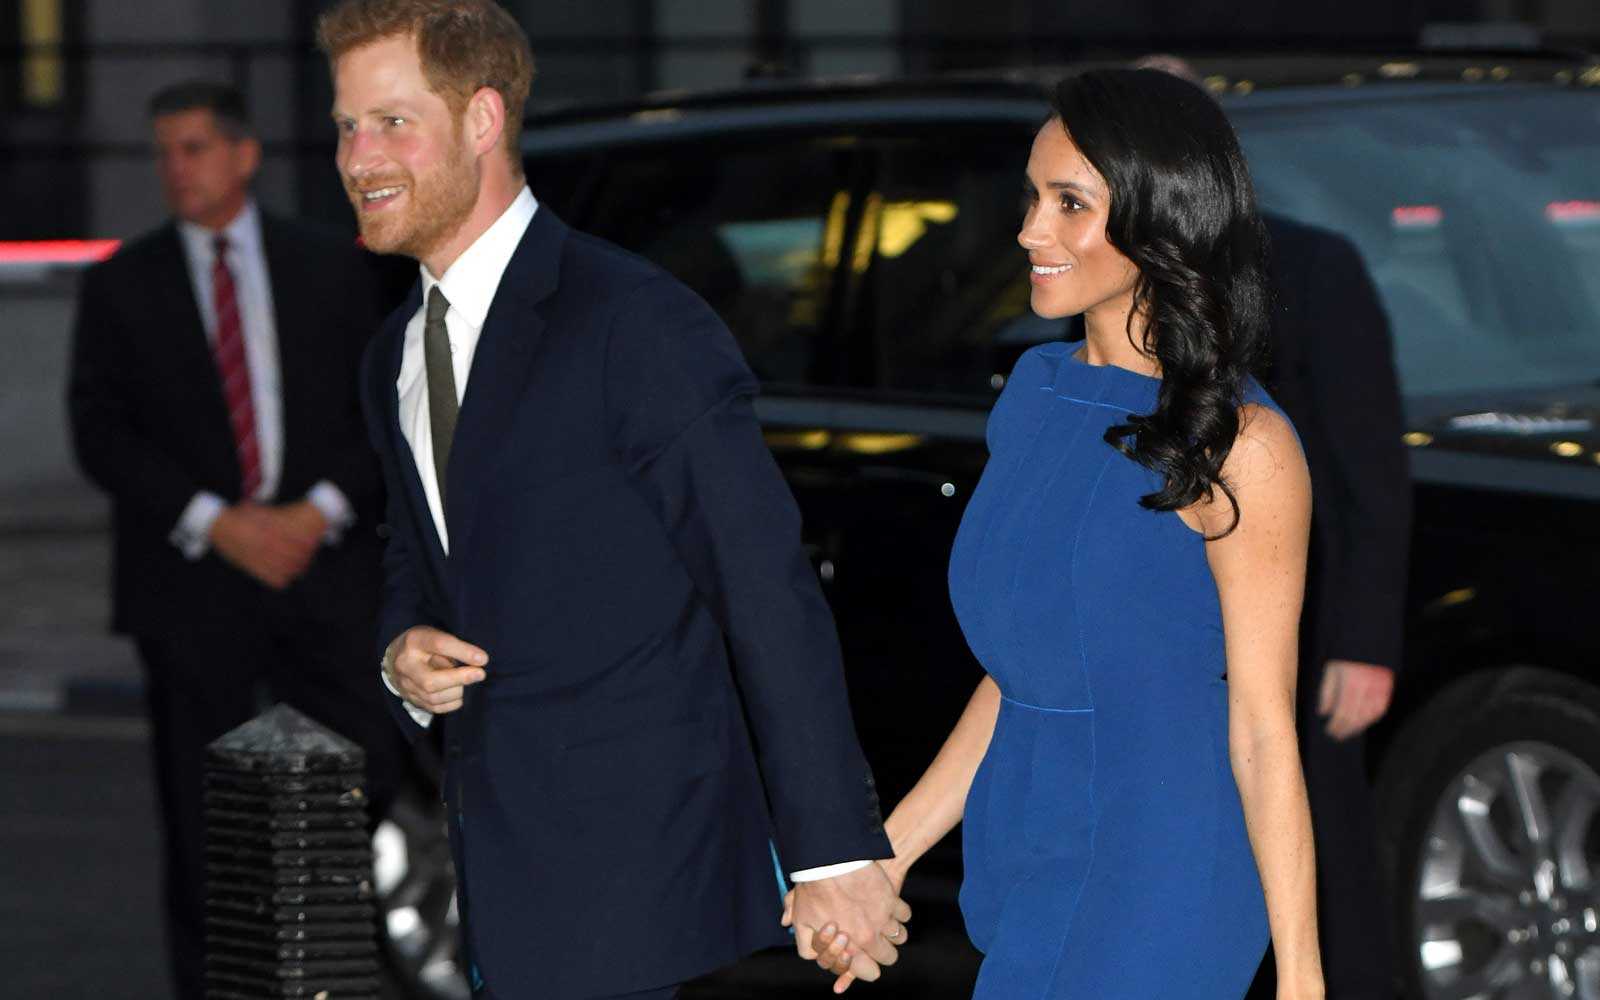 Prince Harry and Meghan Markle's First Royal Tour Involves Some Seriously Gorgeous Destinations — Here's Their Itinerary